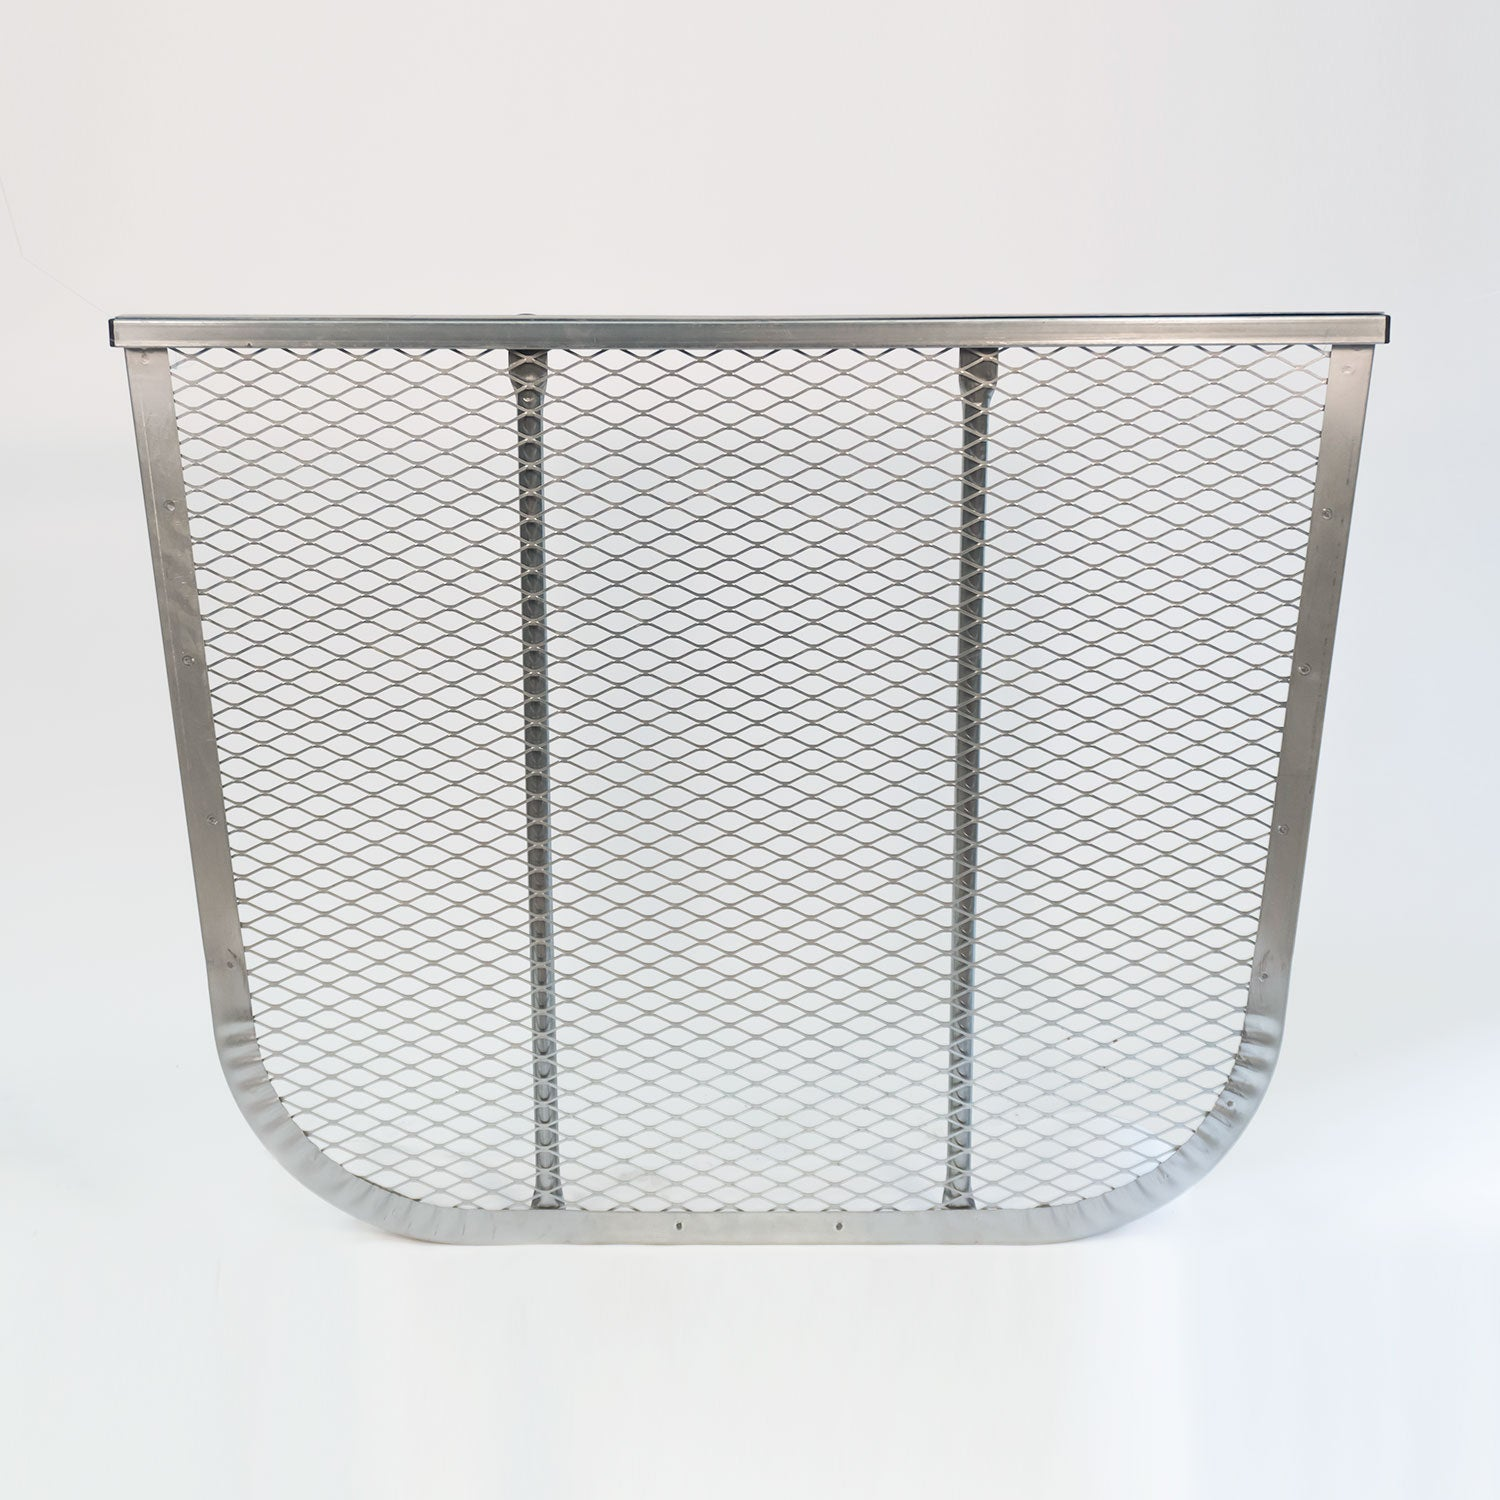 Steel Grate Window Well Cover for Bright Idea Egress Window Kit